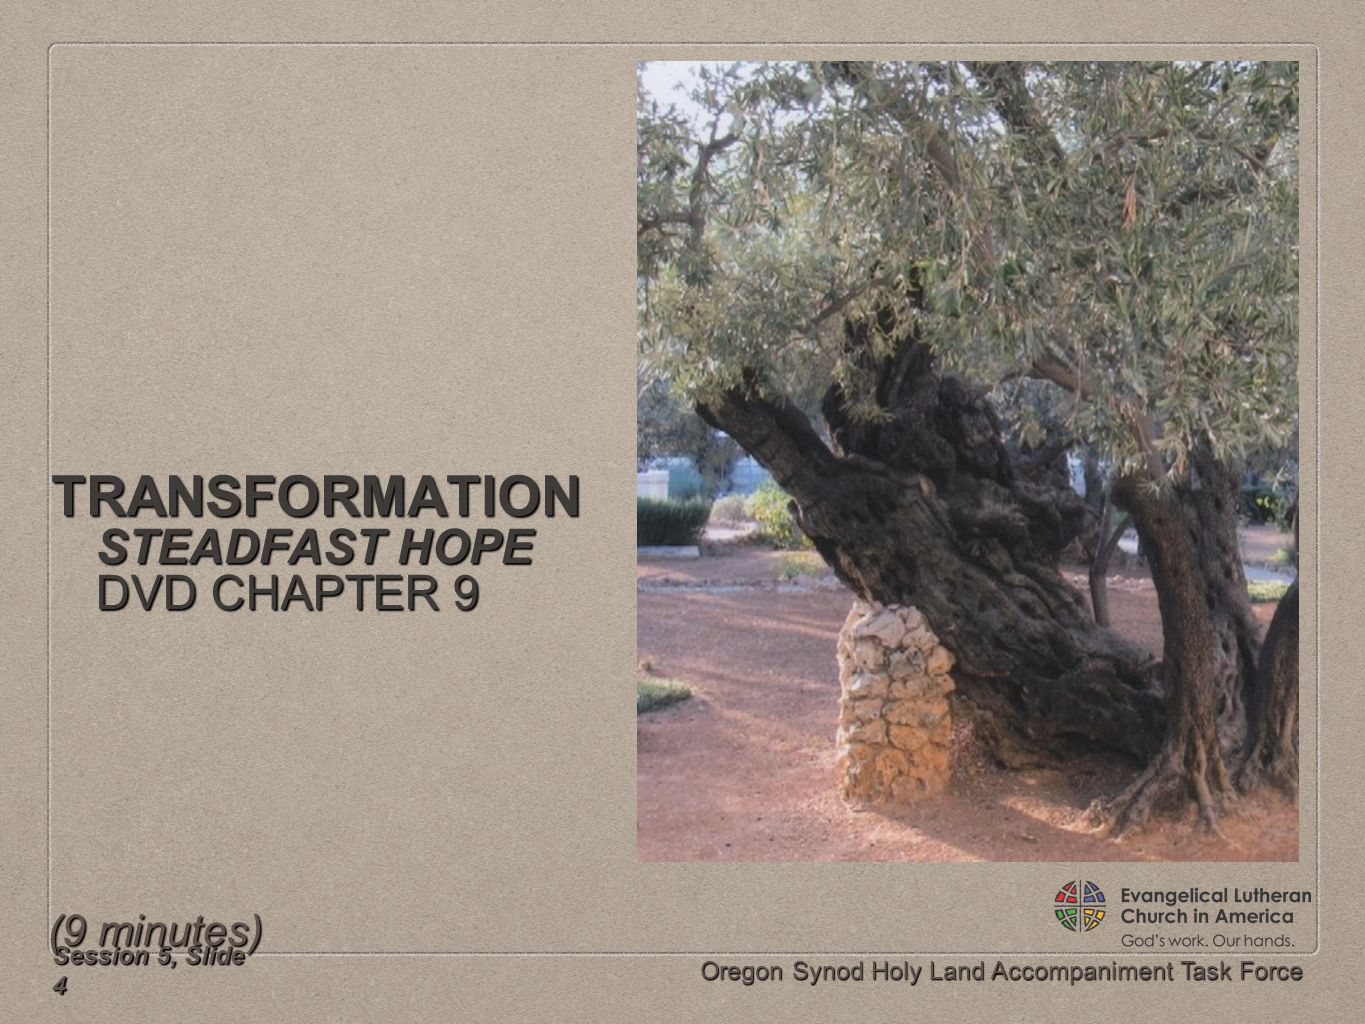 Oregon Synod Holy Land Accompaniment Task Force TRANSFORMATION STEADFAST HOPE DVD CHAPTER 9 Session 5, Slide 4 (9 minutes)